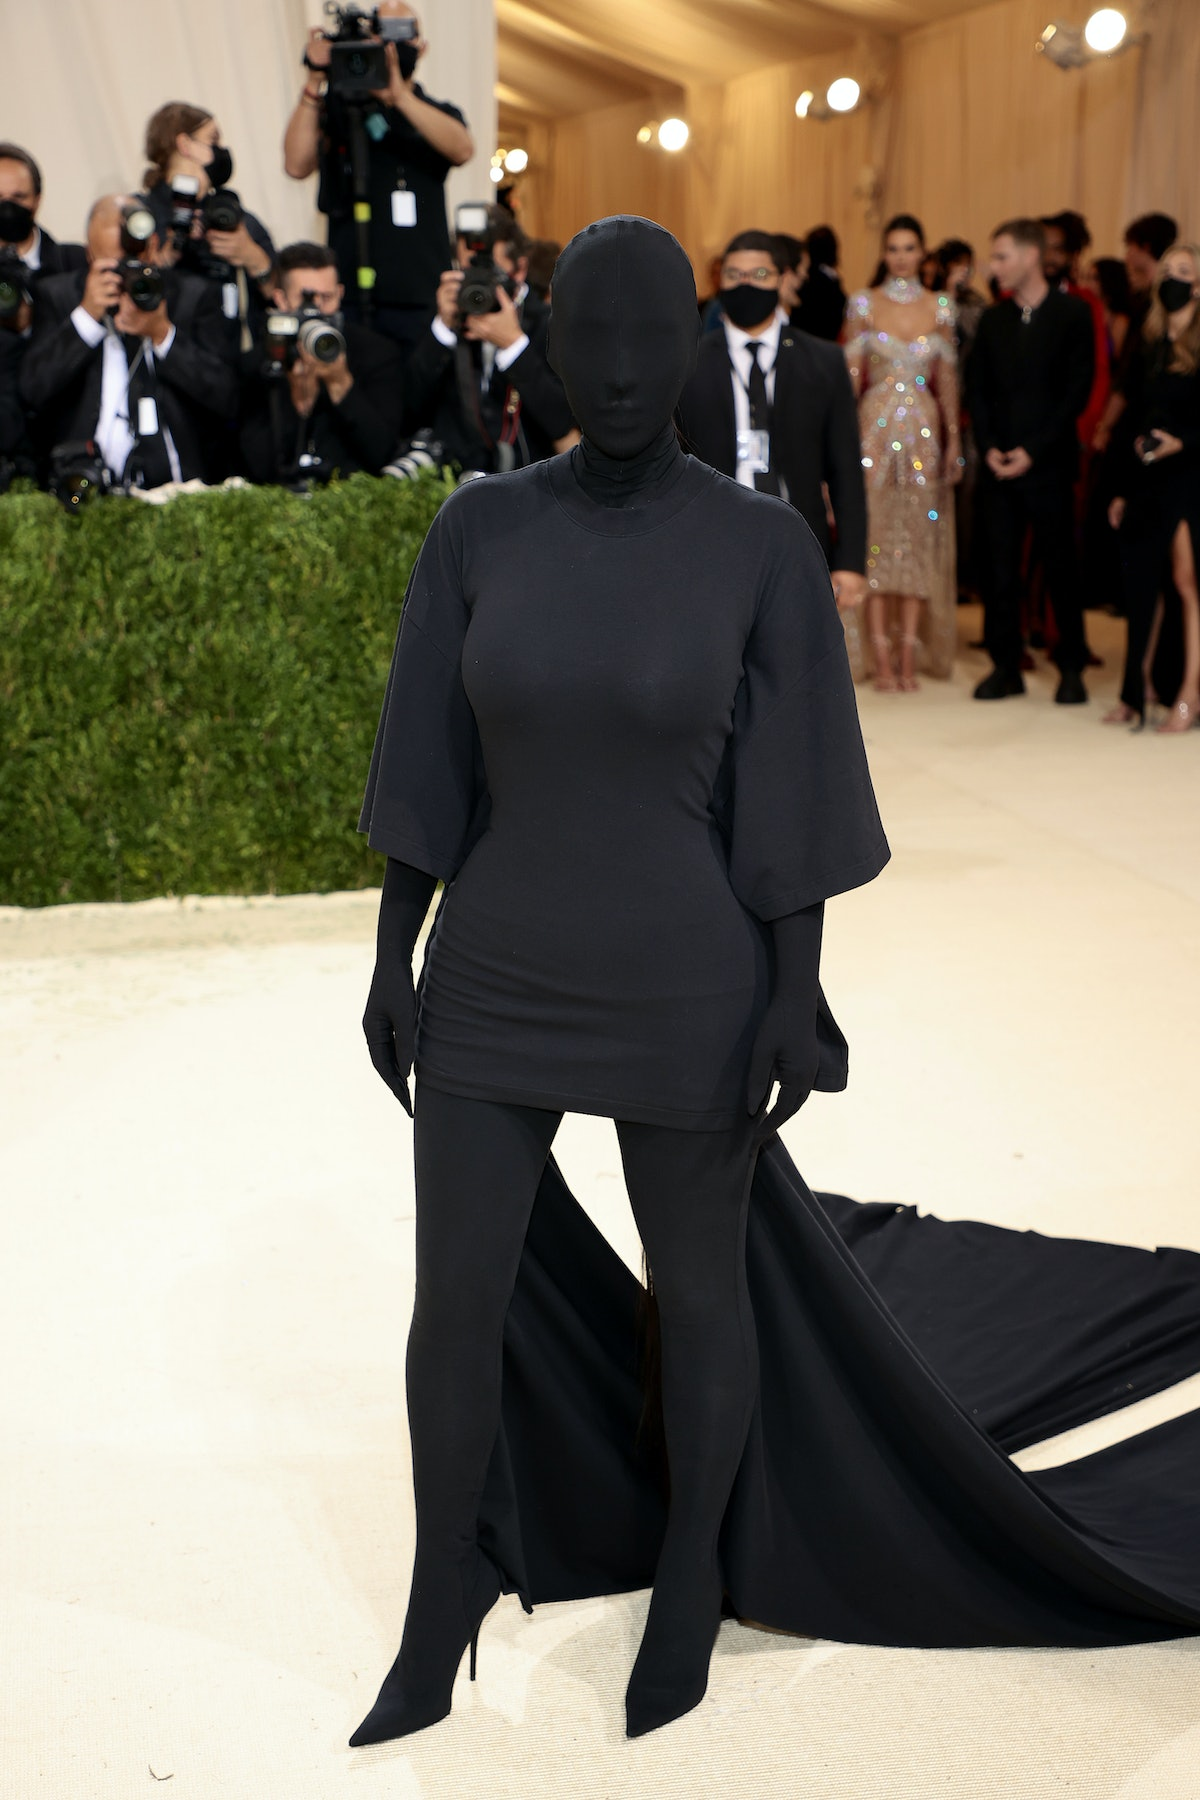 Kim Kardashian West attends The 2021 Met Gala Celebrating In America: A Lexicon Of Fashion at Metrop...